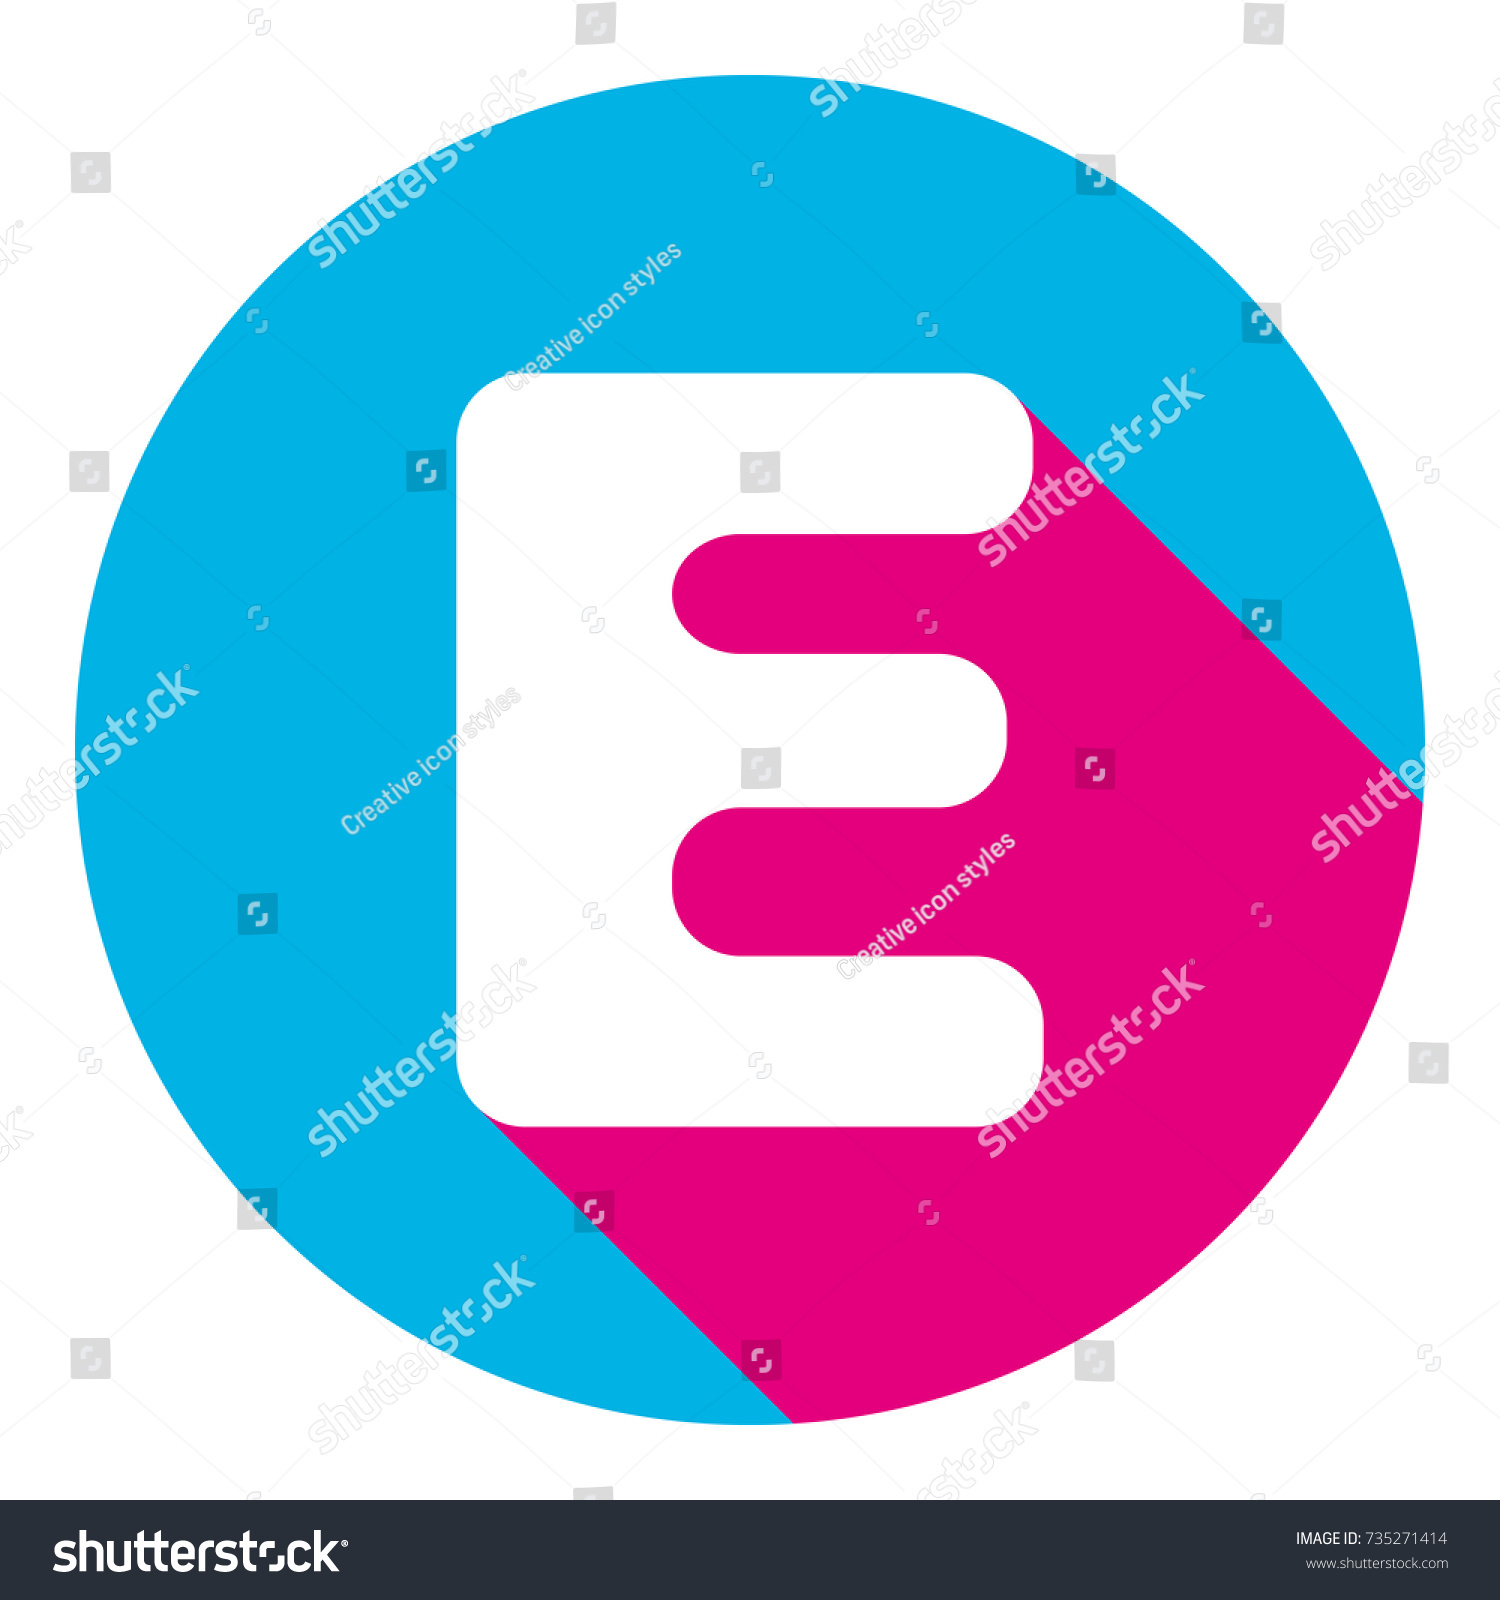 Letter E Sign Design Template Element Stock Vector (Royalty Free ...